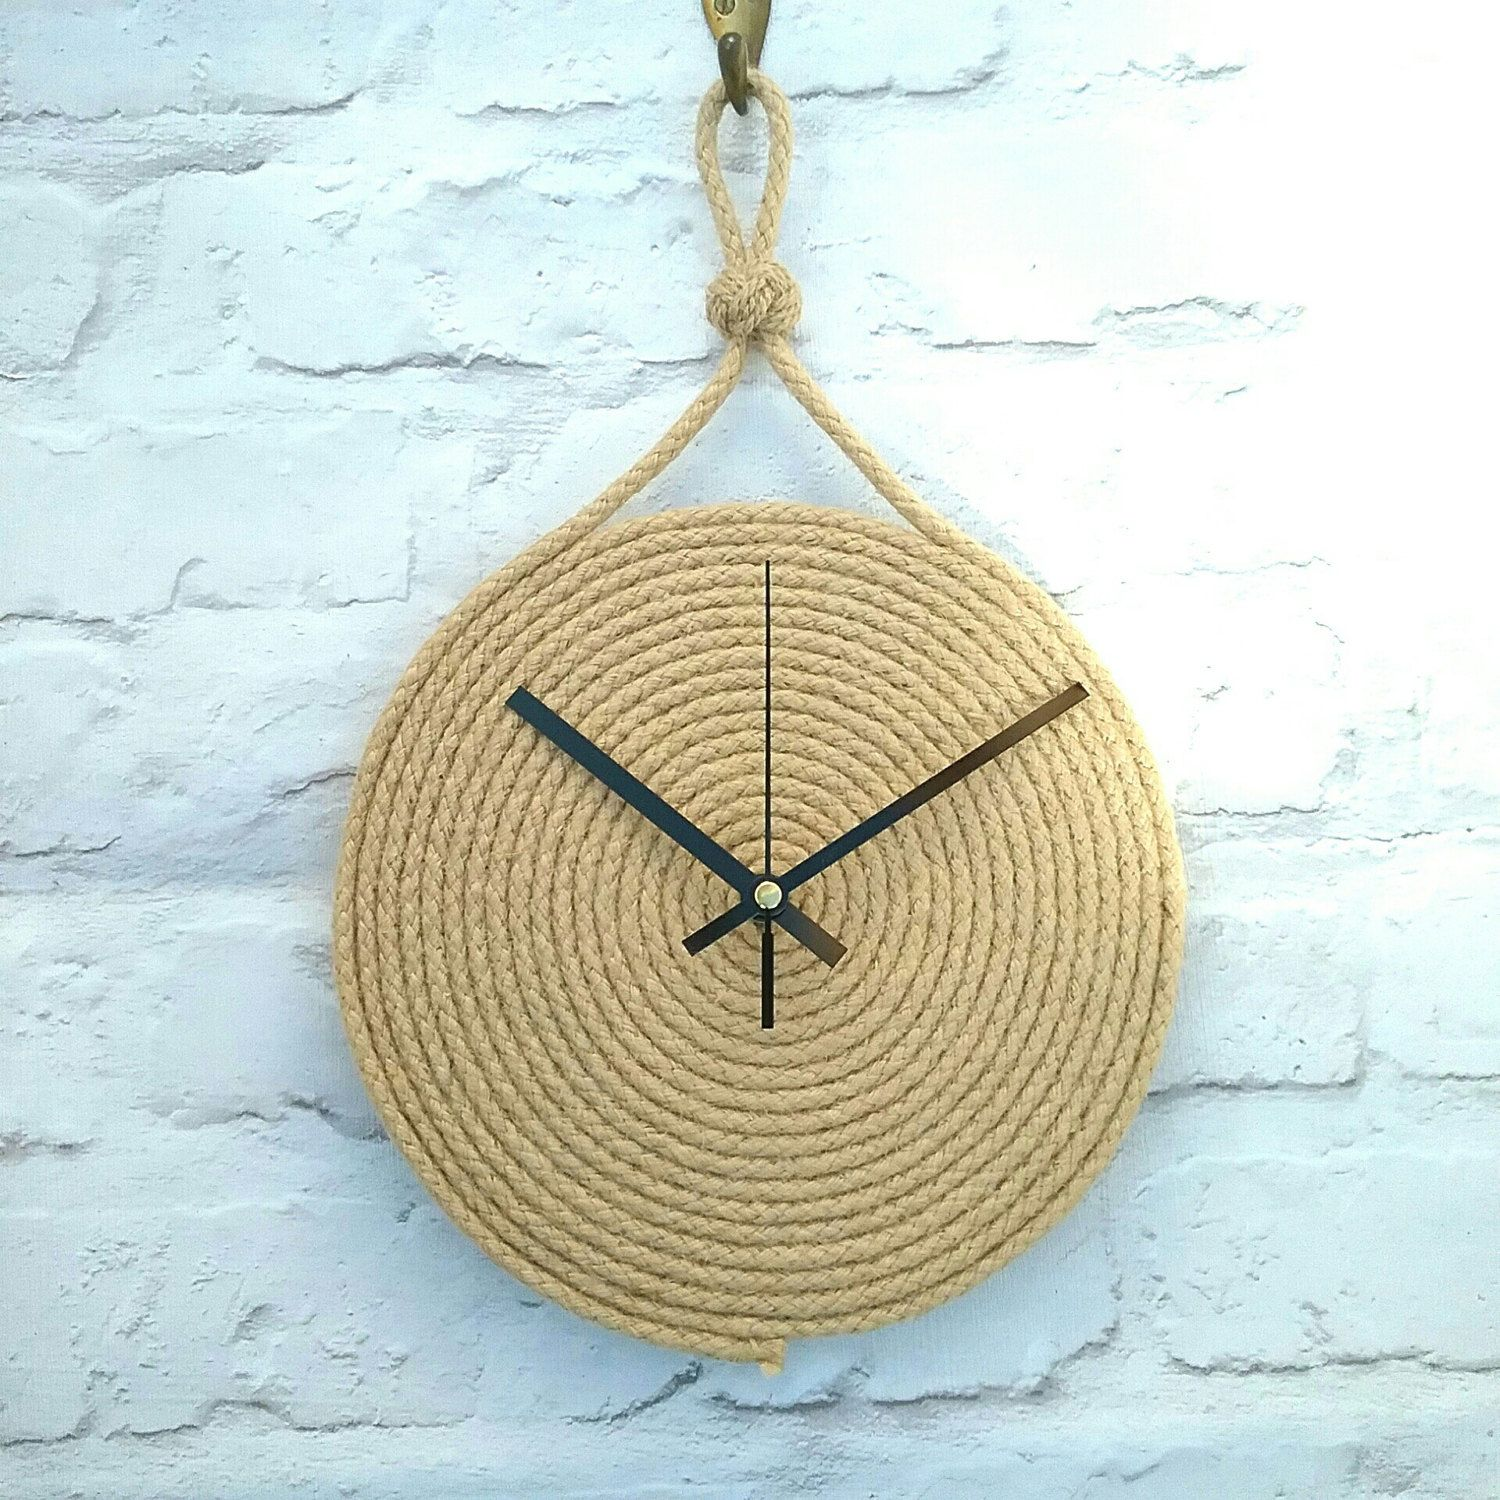 Our Latest Creation A Nautical Rope Clock It Is Finished Off With A Turks Head Knot To Make It Even More Seaman Like Diy Clock Wall Rope Decor Diy Clock